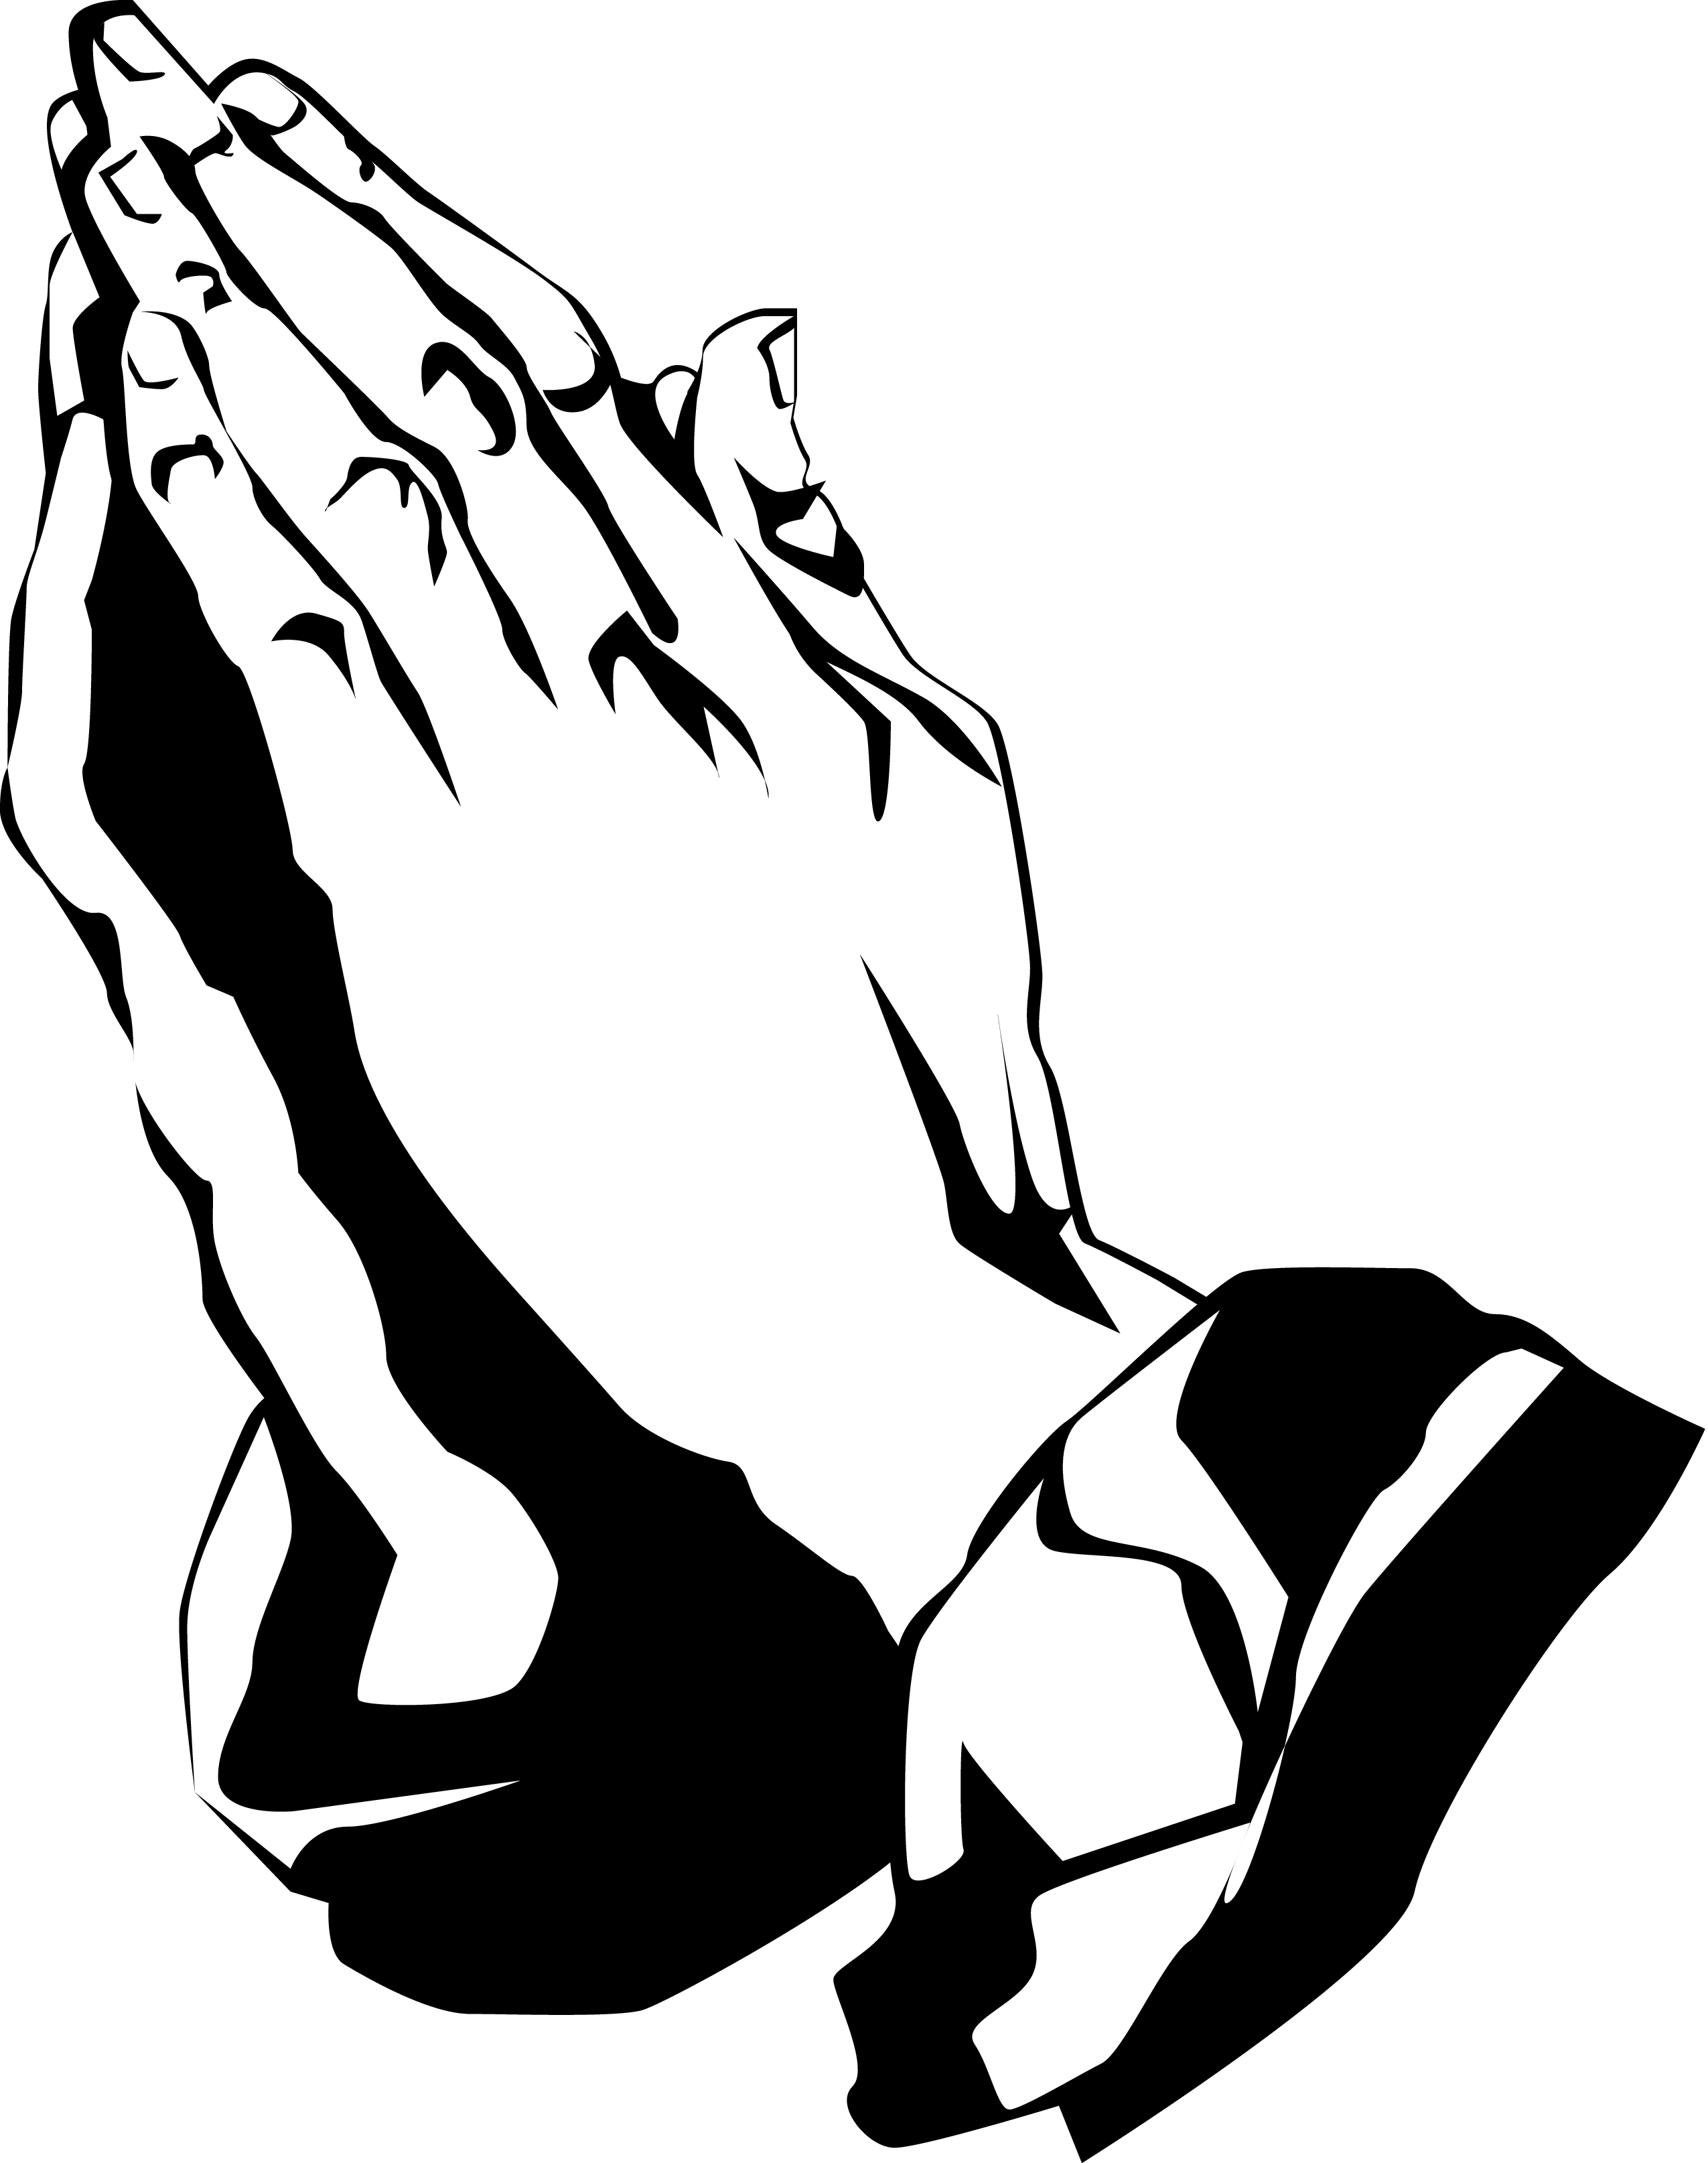 2550x3229 Prayer Hands Open Clip Art